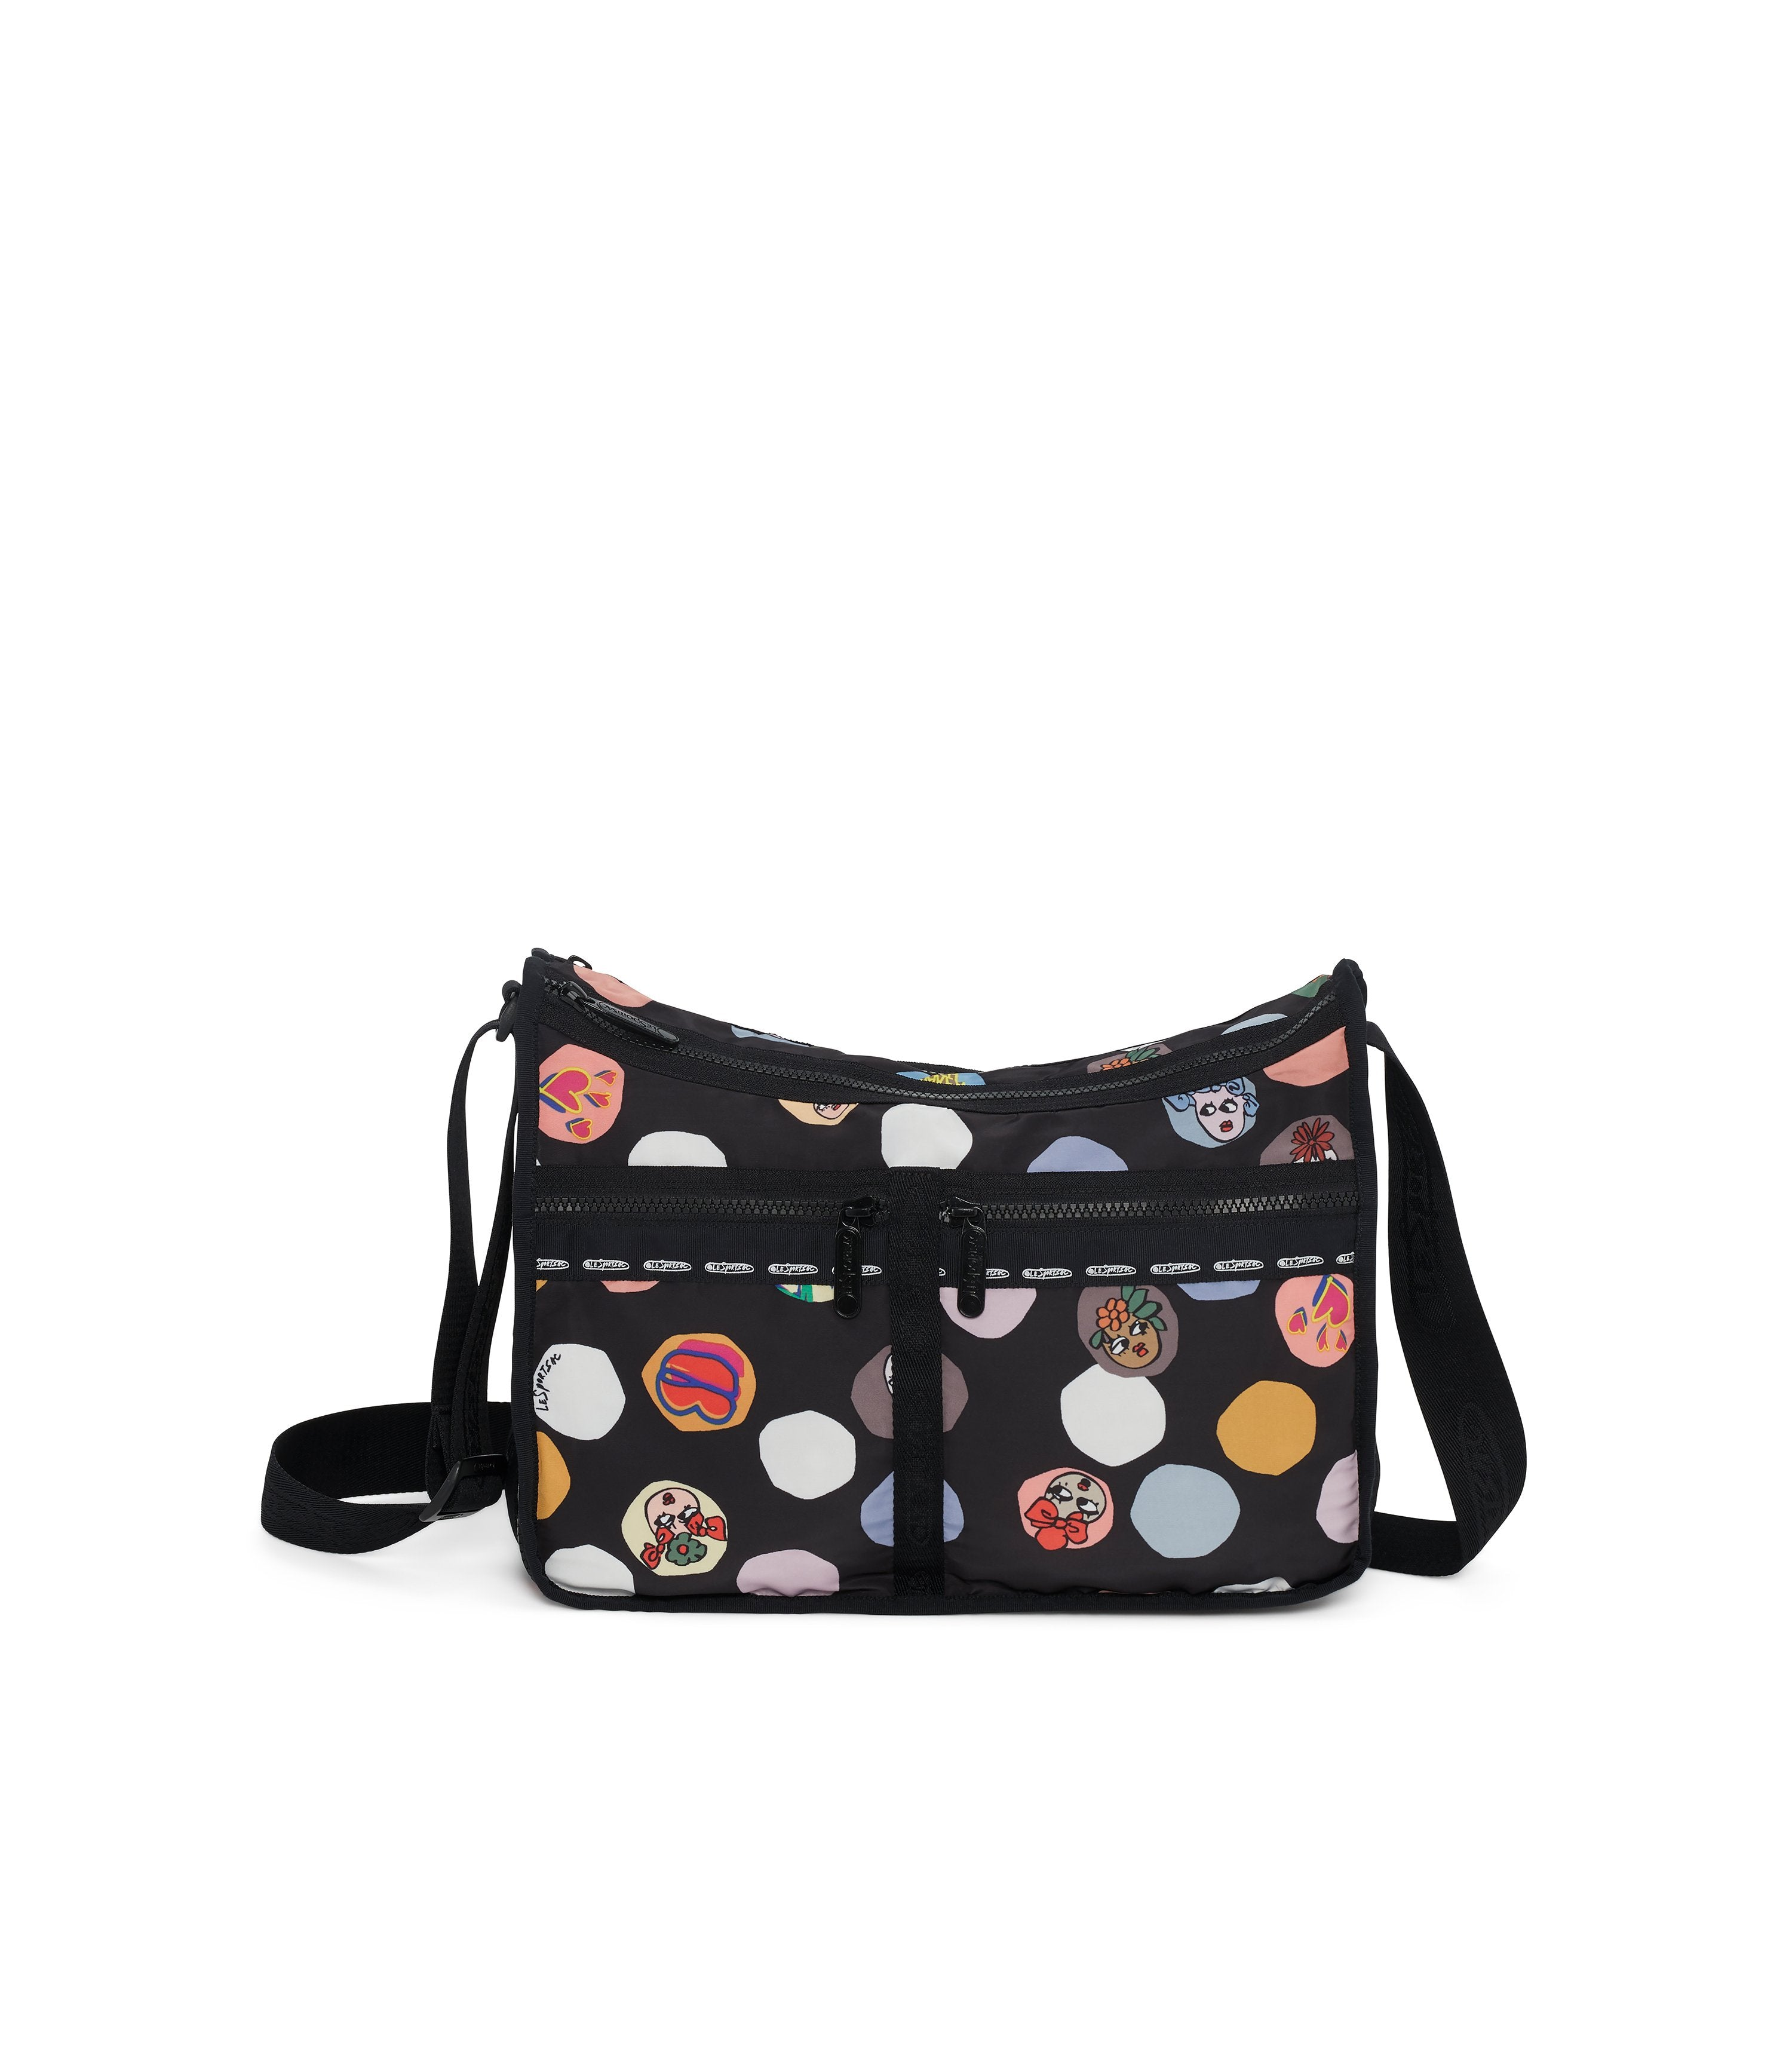 Deluxe Everyday Bag 45 1